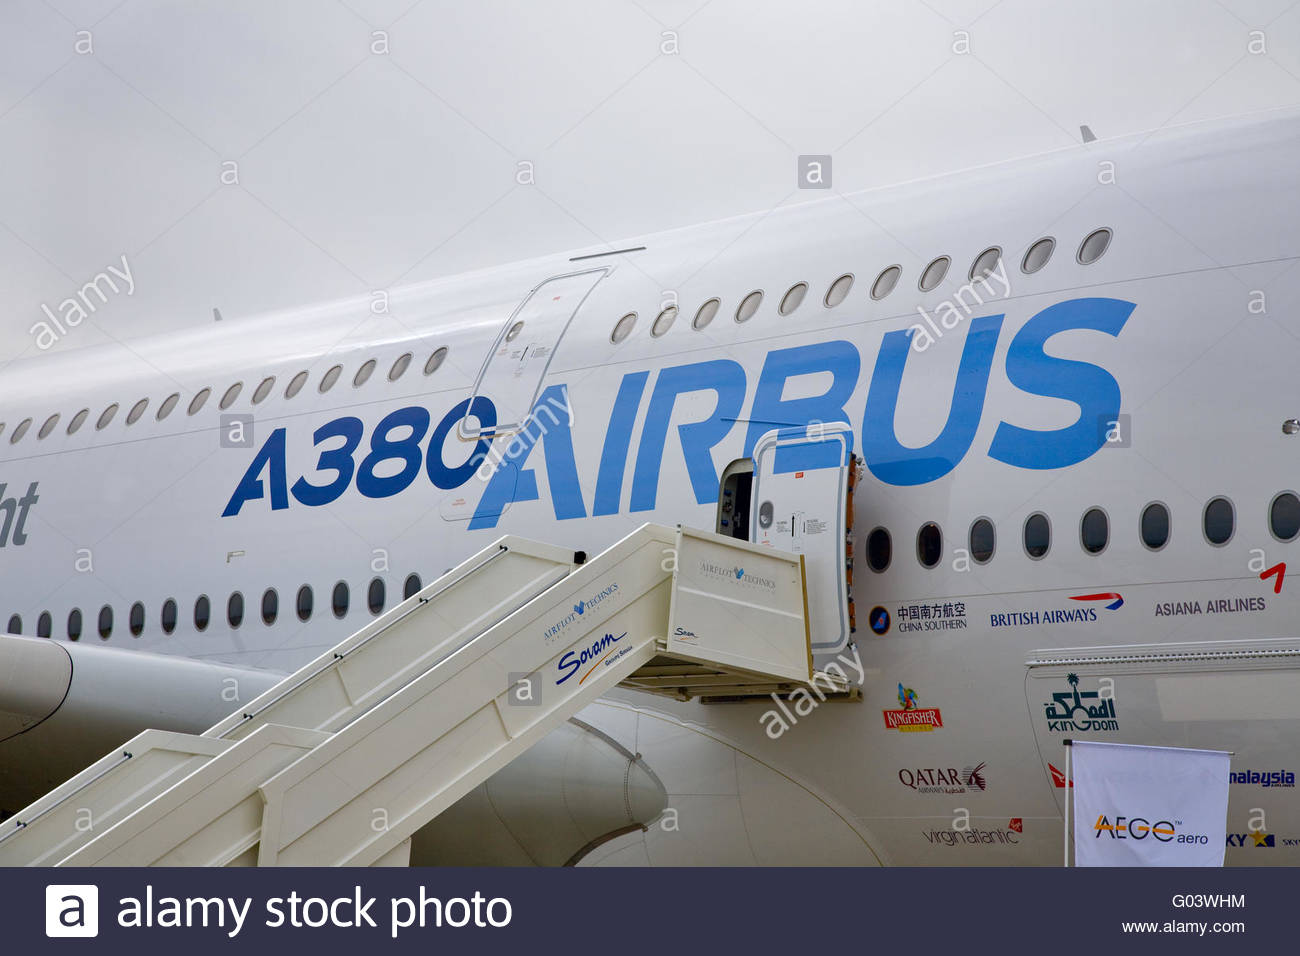 Display by the Airbus A380 at the International Aviation and Space salon MAKS - Stock Image